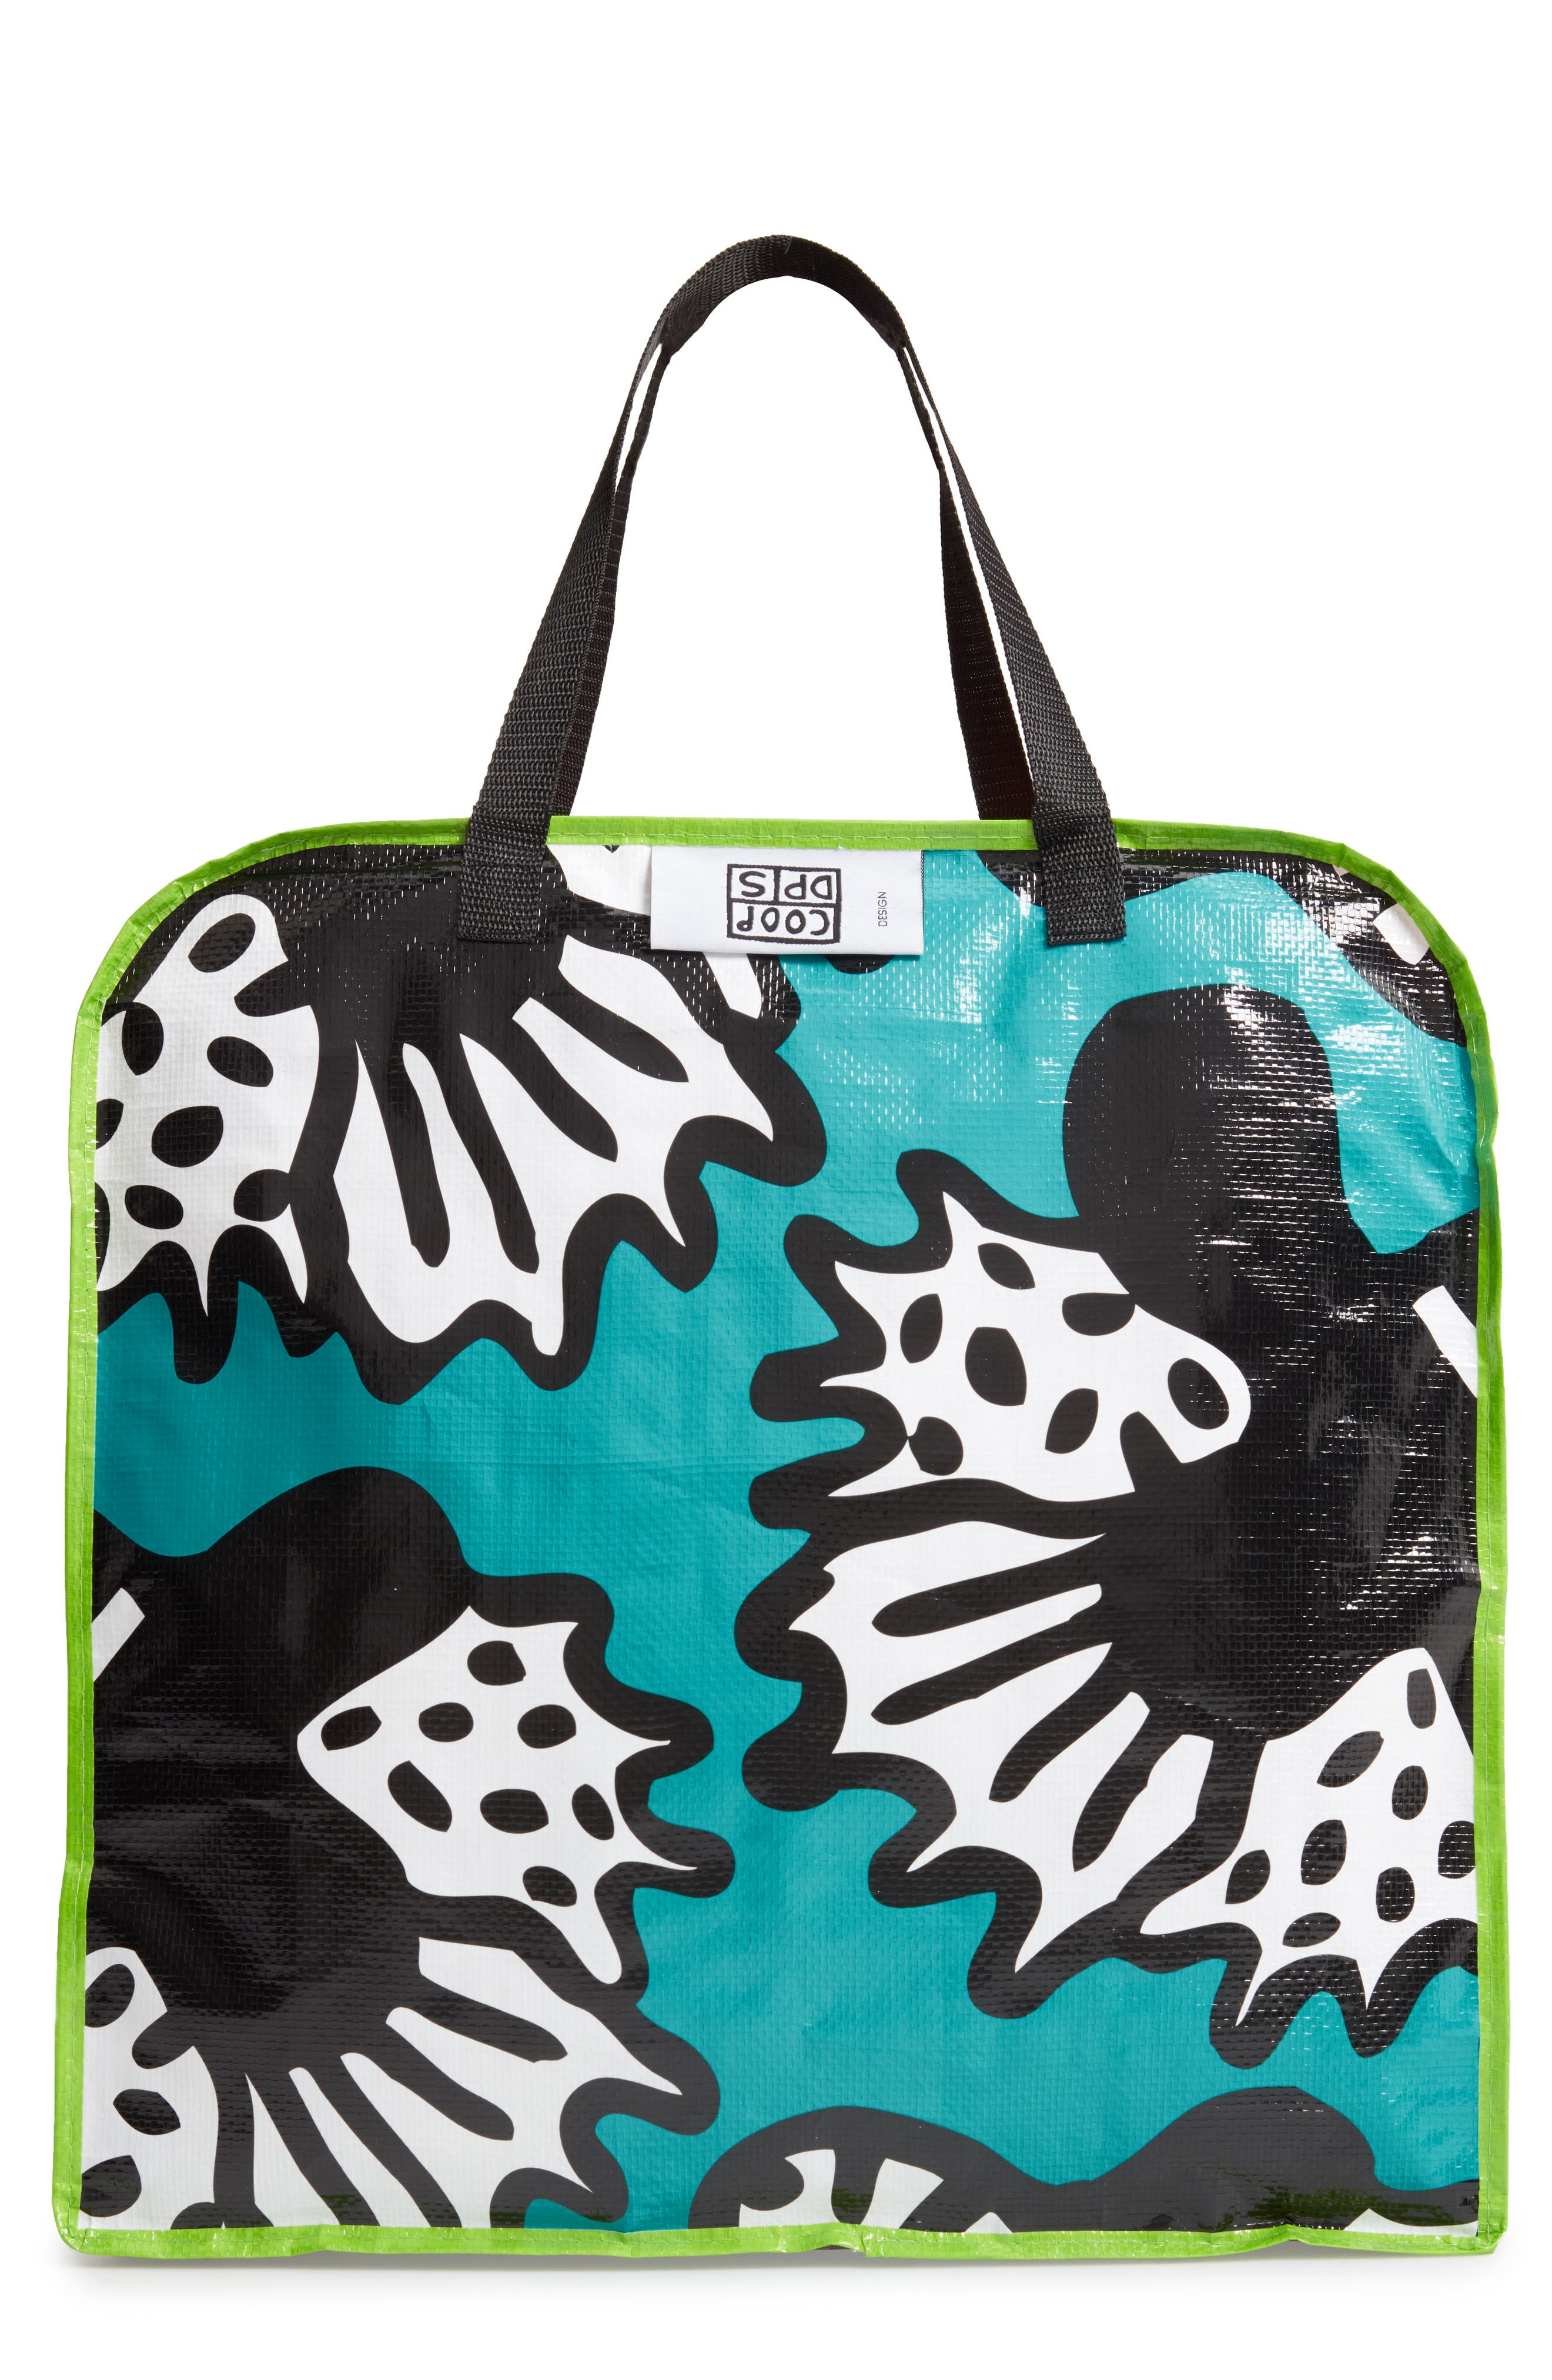 MEMPHIS Milano Butterfly Tote,                             Main thumbnail 1, color,                             BLUE